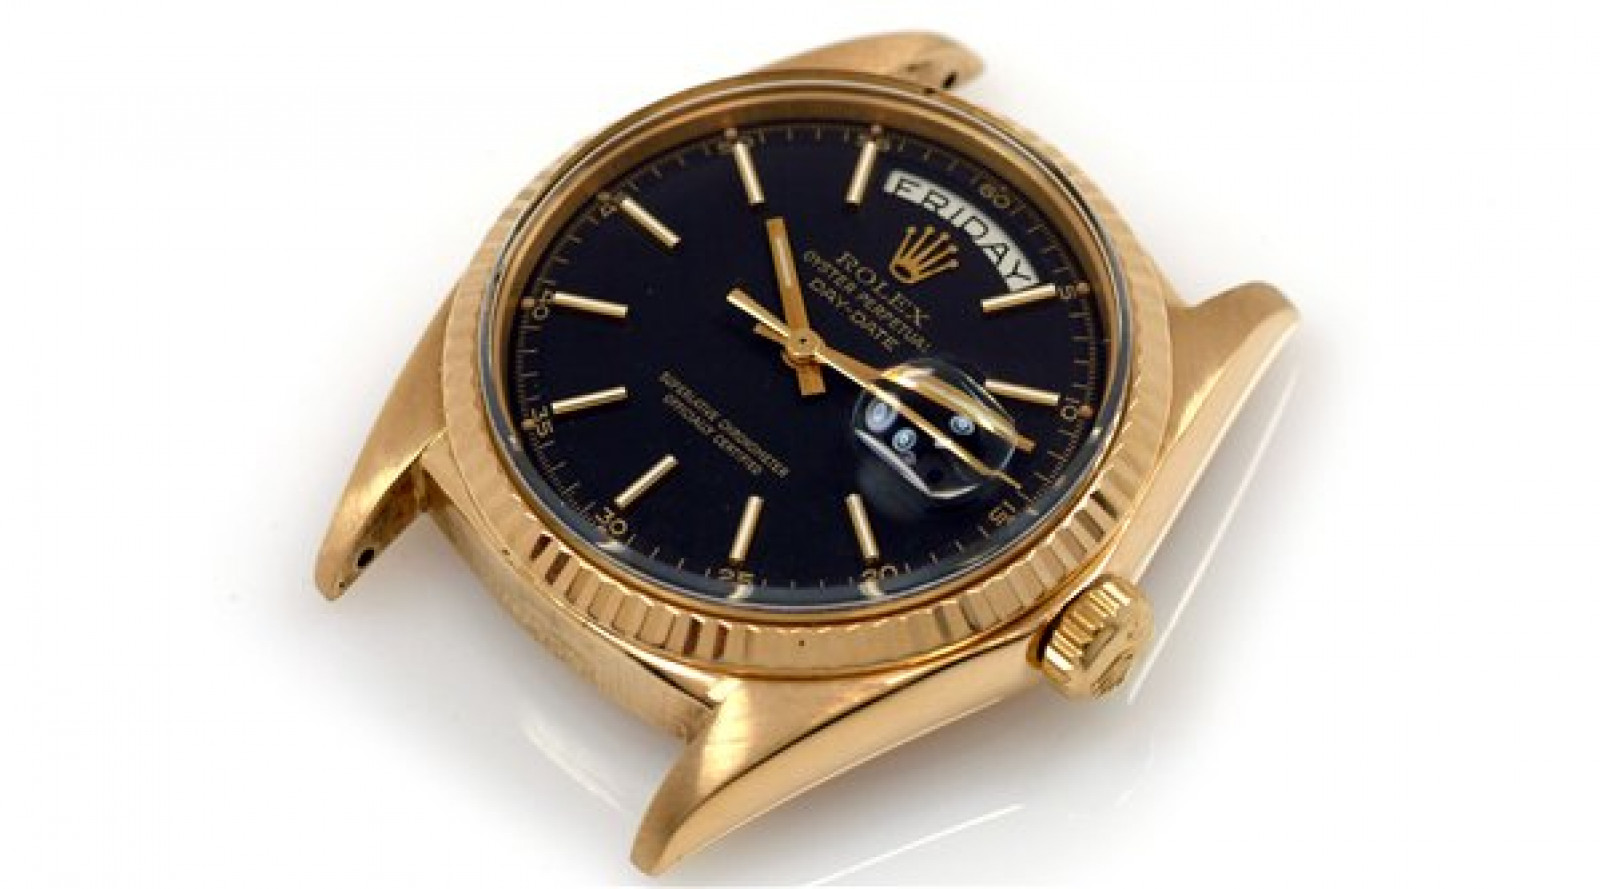 Vintage Rolex Day-Date 1803 Gold Year 1969 with Black Dial 1969